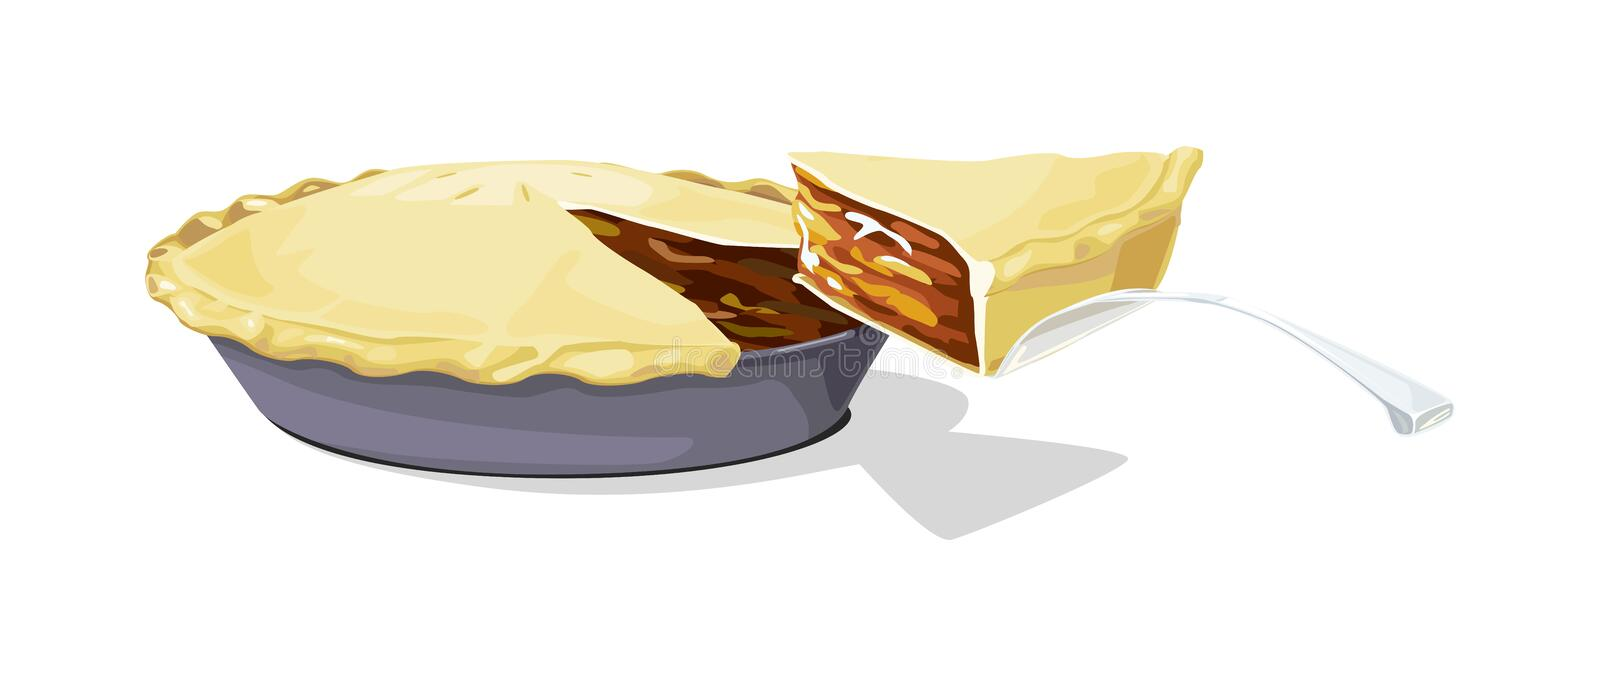 Download Apple Pie With A Slice Stock Photo - Image: 8492080